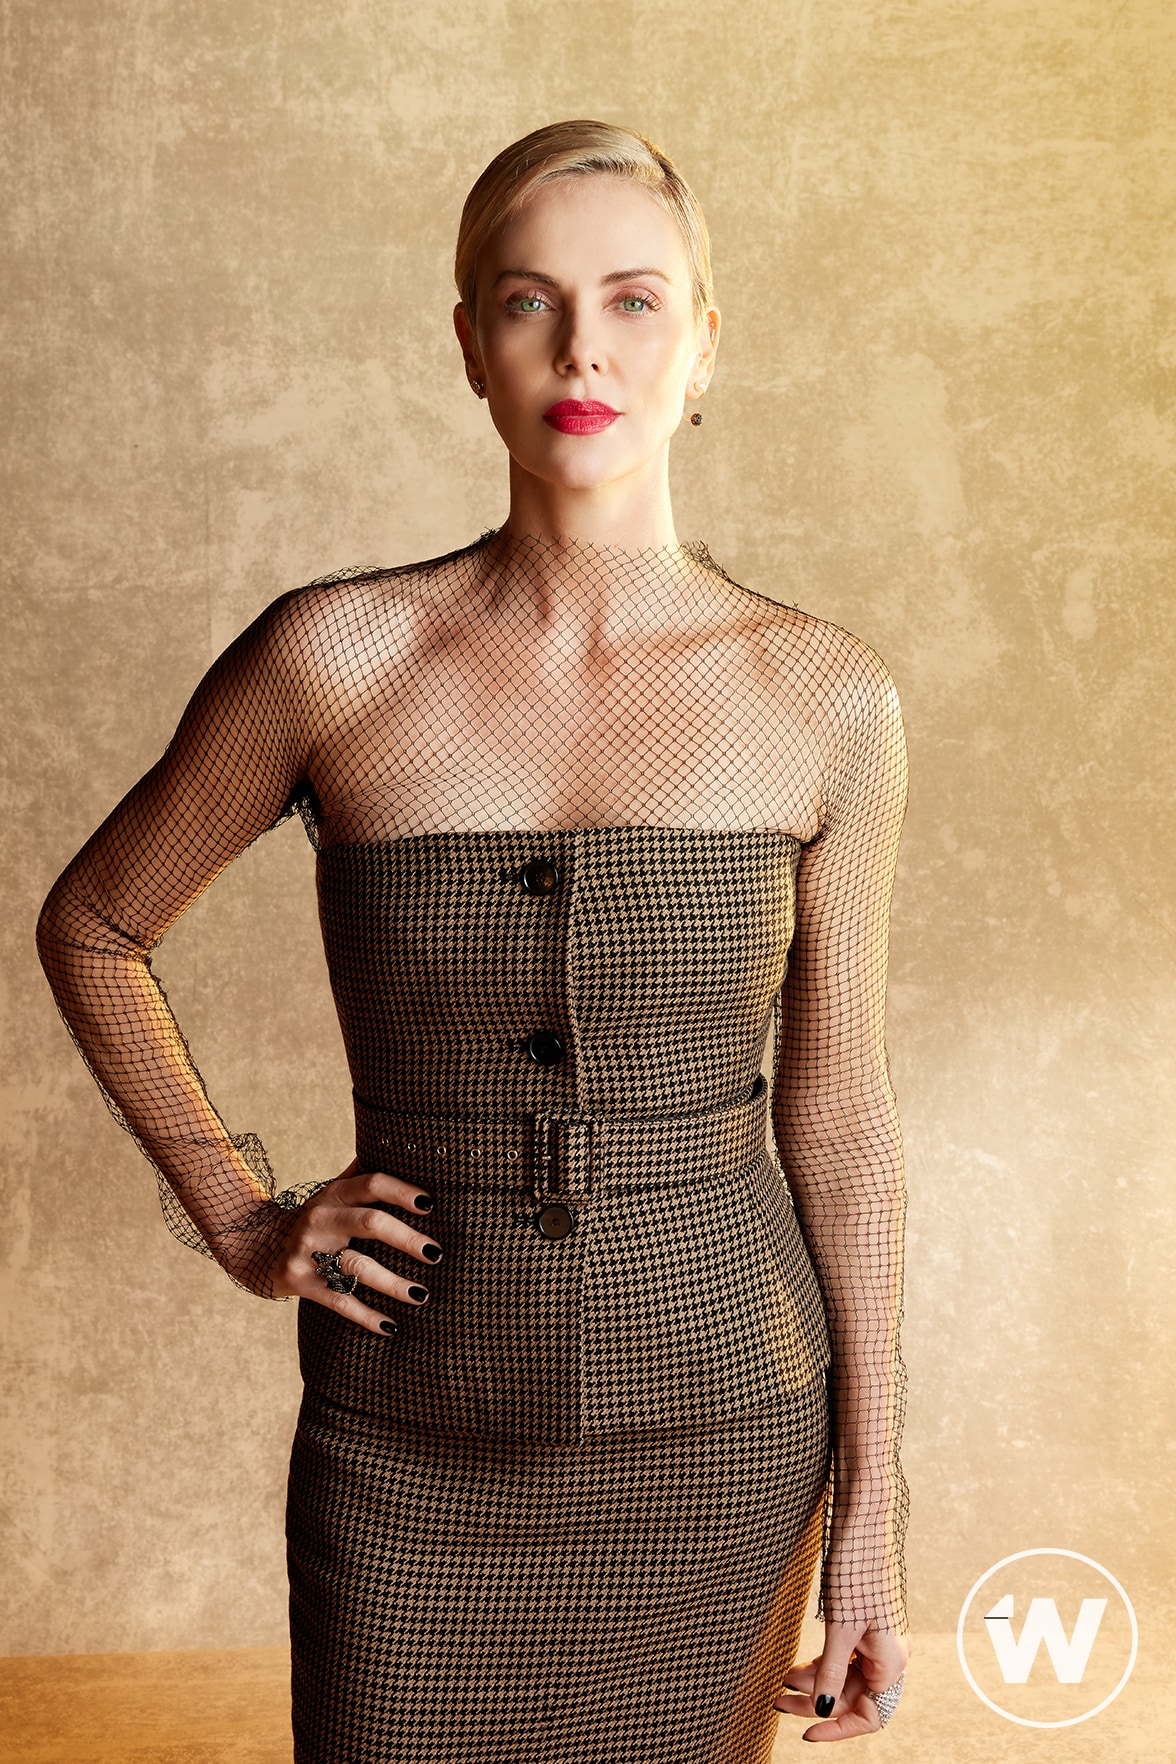 Charlize Theron, Bombshell